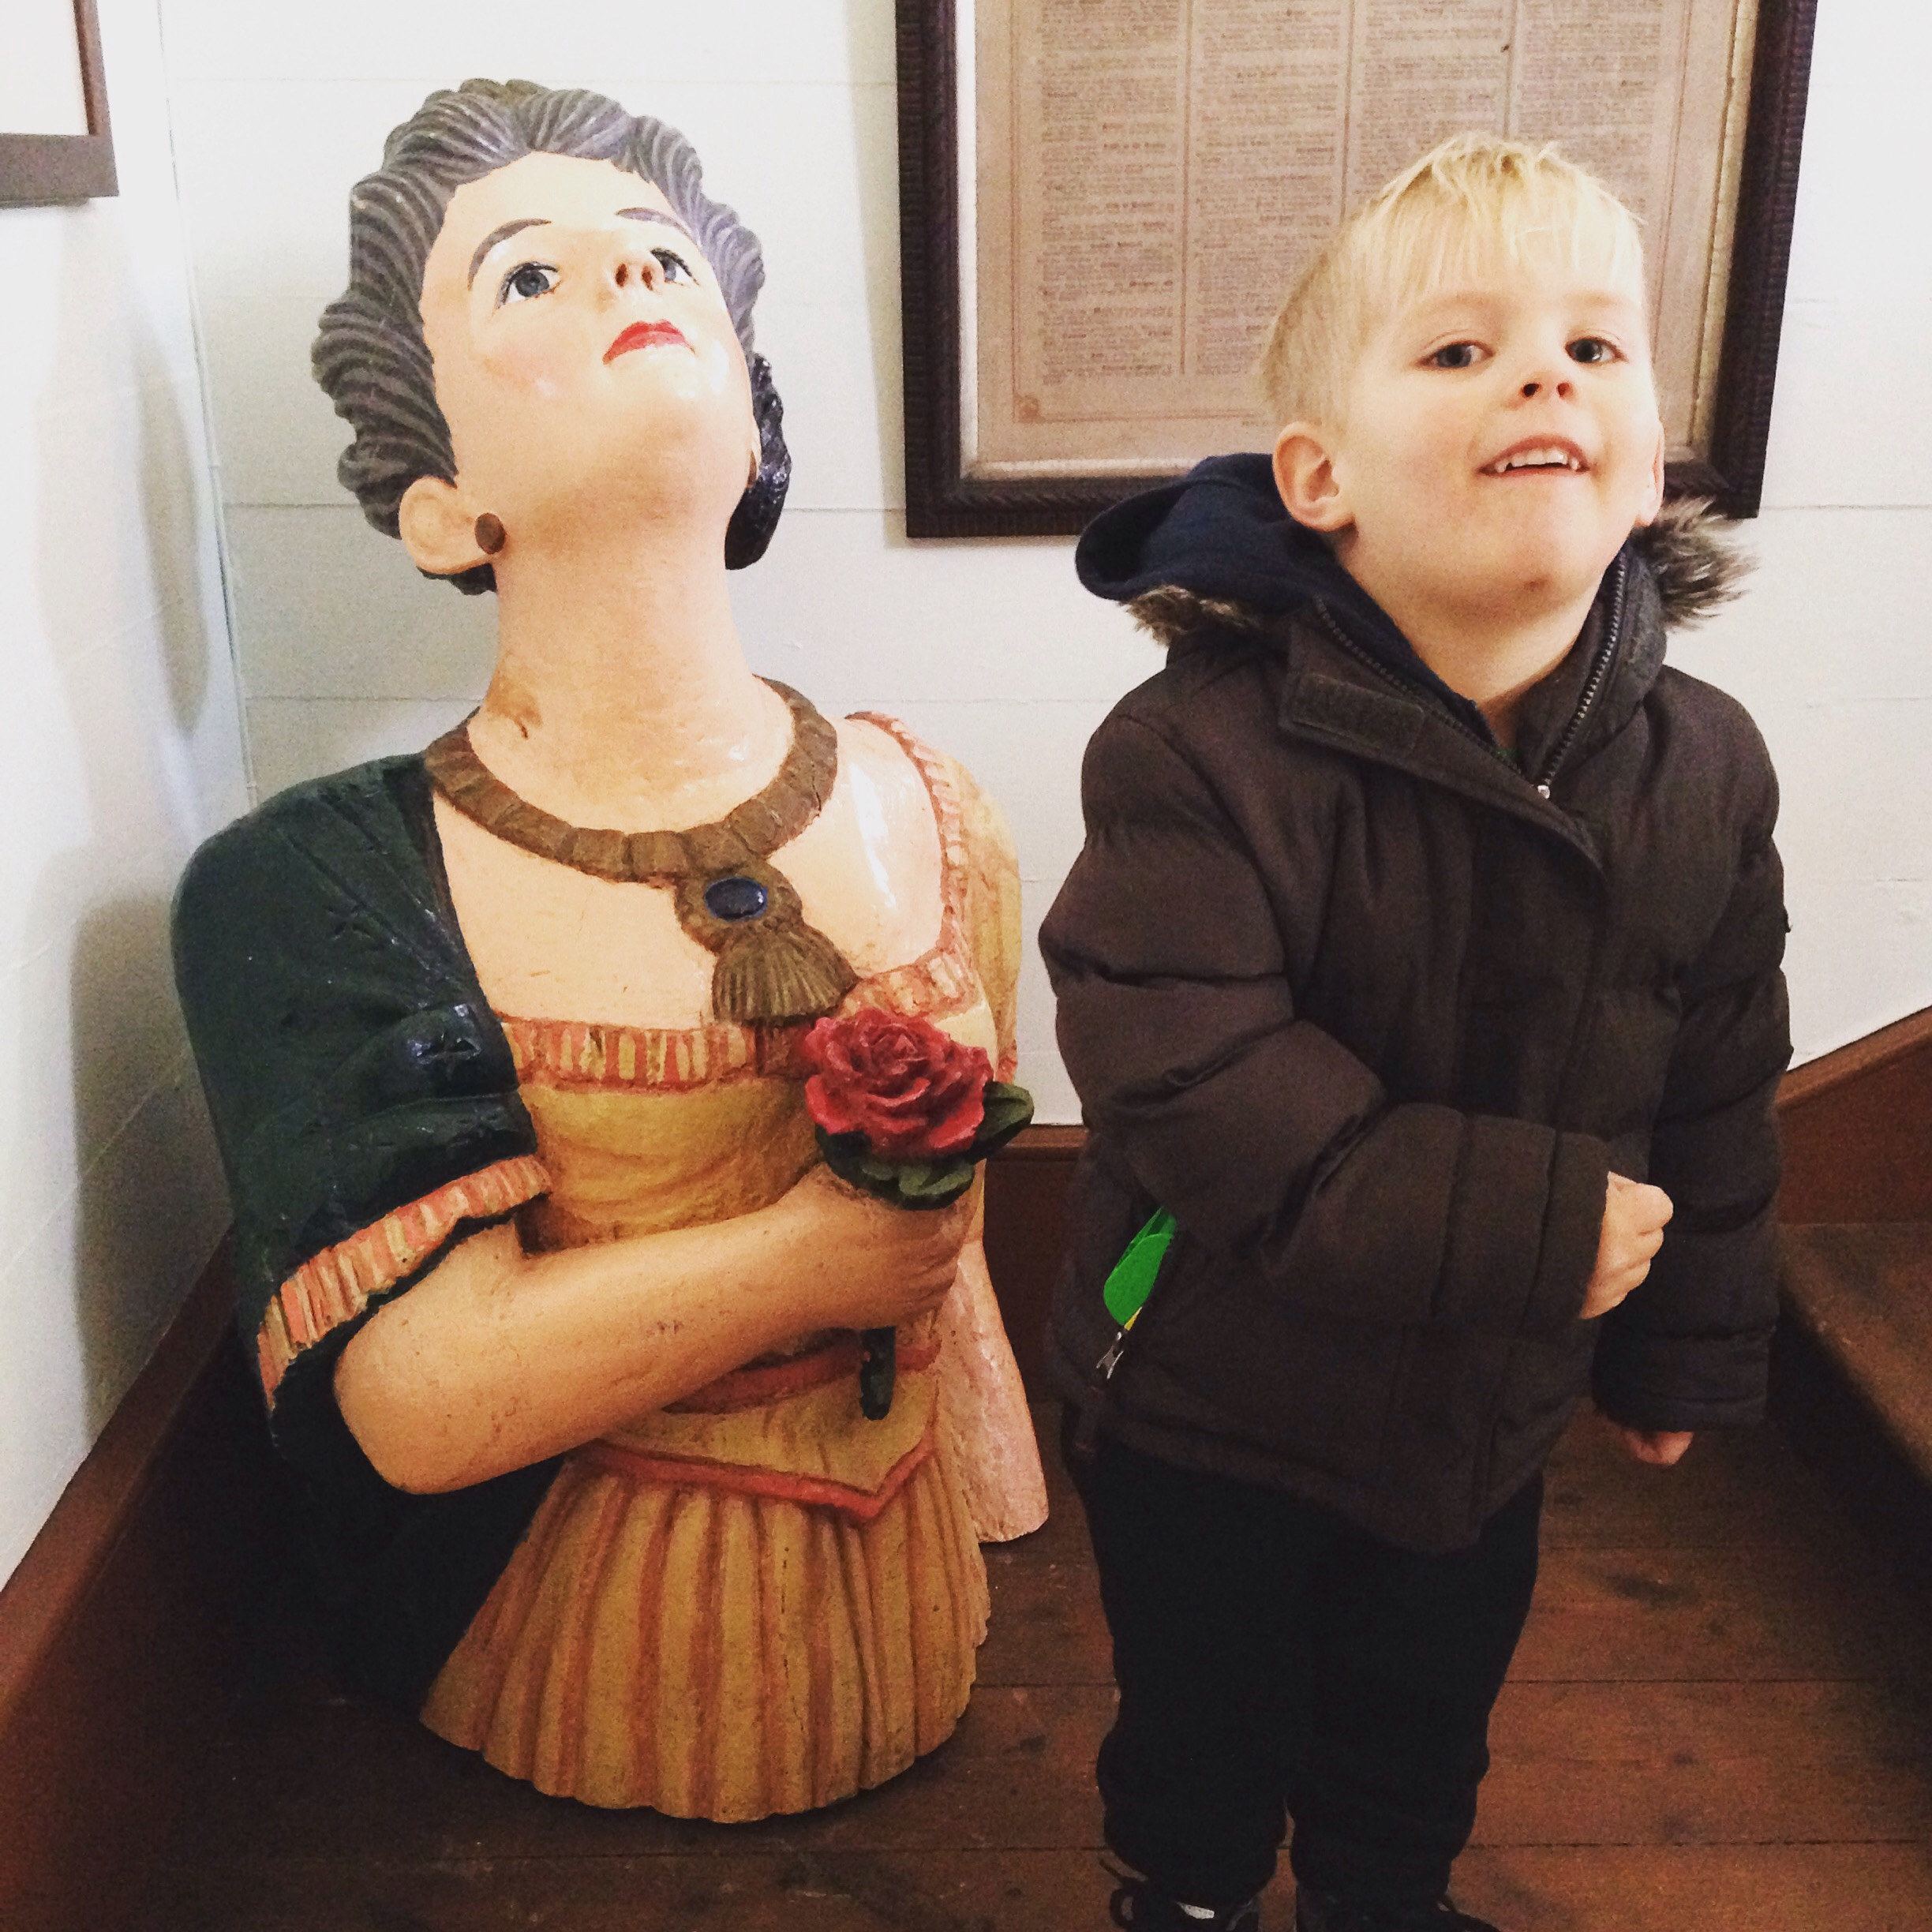 James as a boat figure head, with a figure head at the TVLB Museum